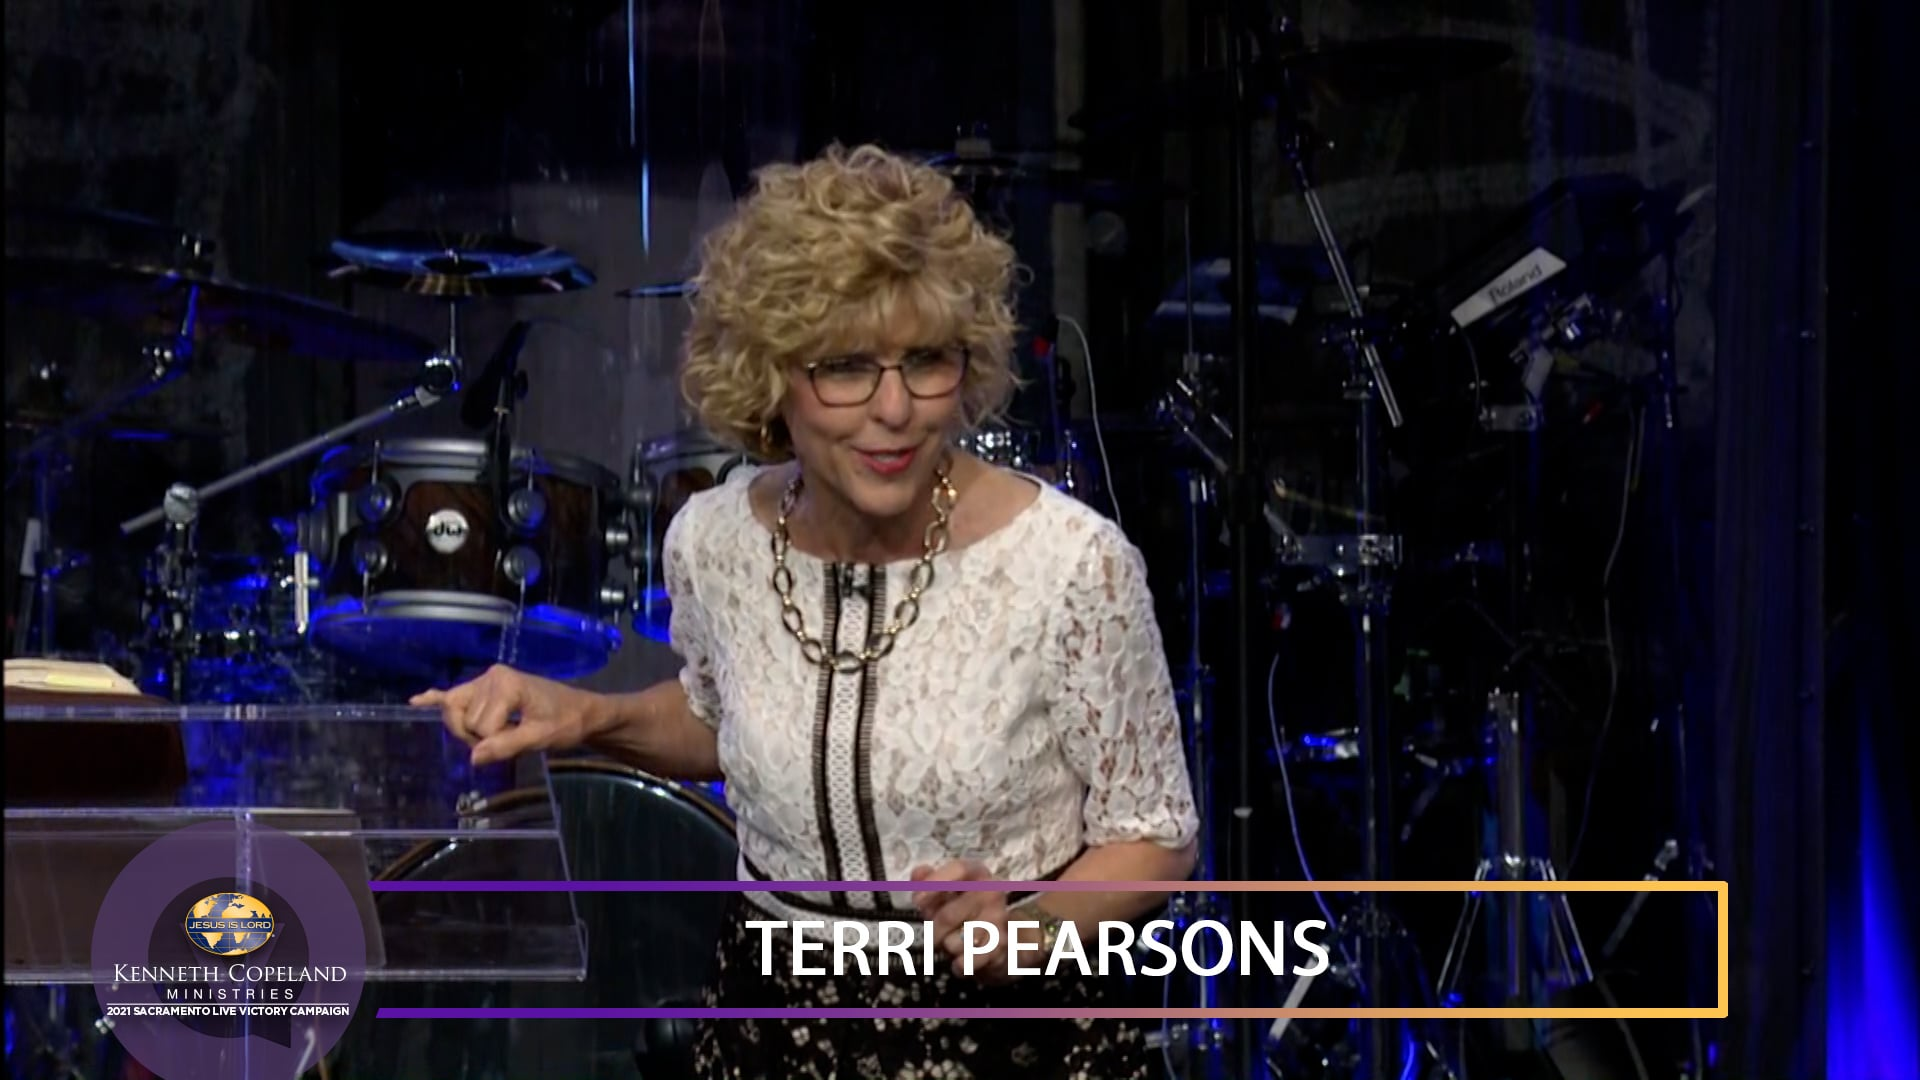 At the 2021 Sacramento Victory Campaign, join Terri Copeland Pearsons as she teaches about the grace that works in apostles and prophets to be dispensed to others. Grace discriminates! It confirms what God wants you to be or have. It doesn't fit anyone else. It is God's equipment on you, tailor-made.